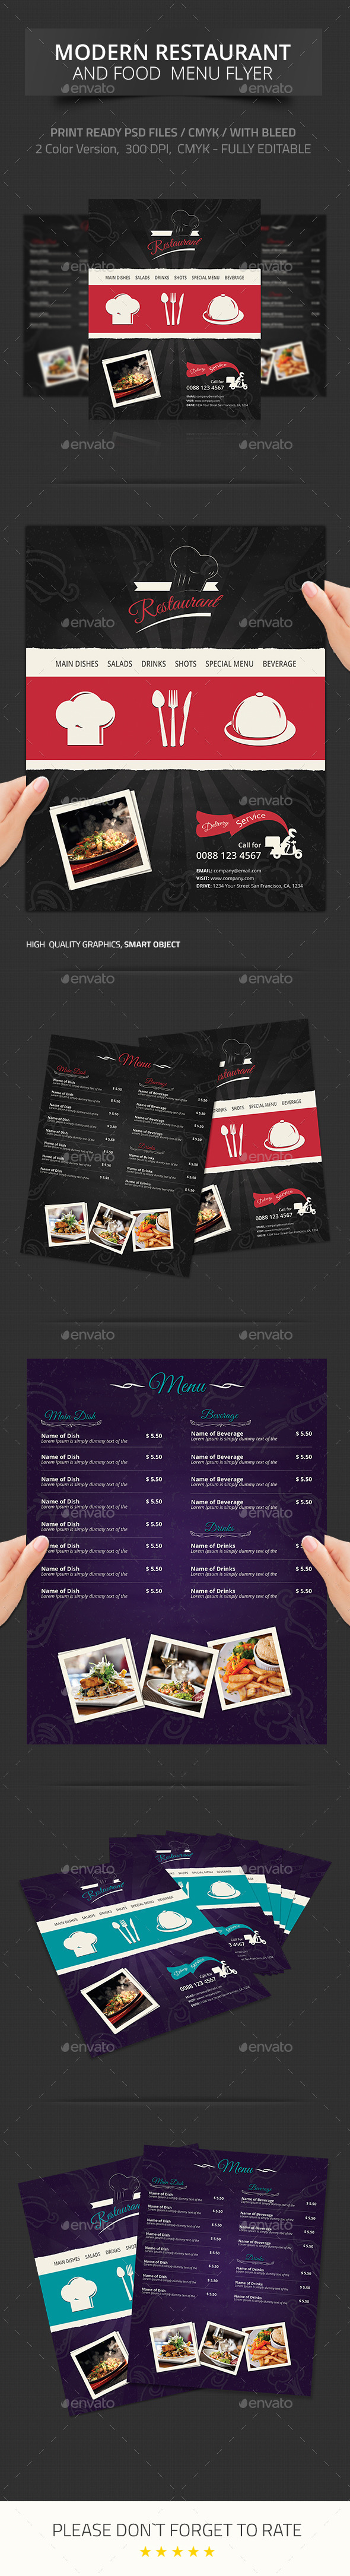 Modern Restaurant and Food Menu Flyer